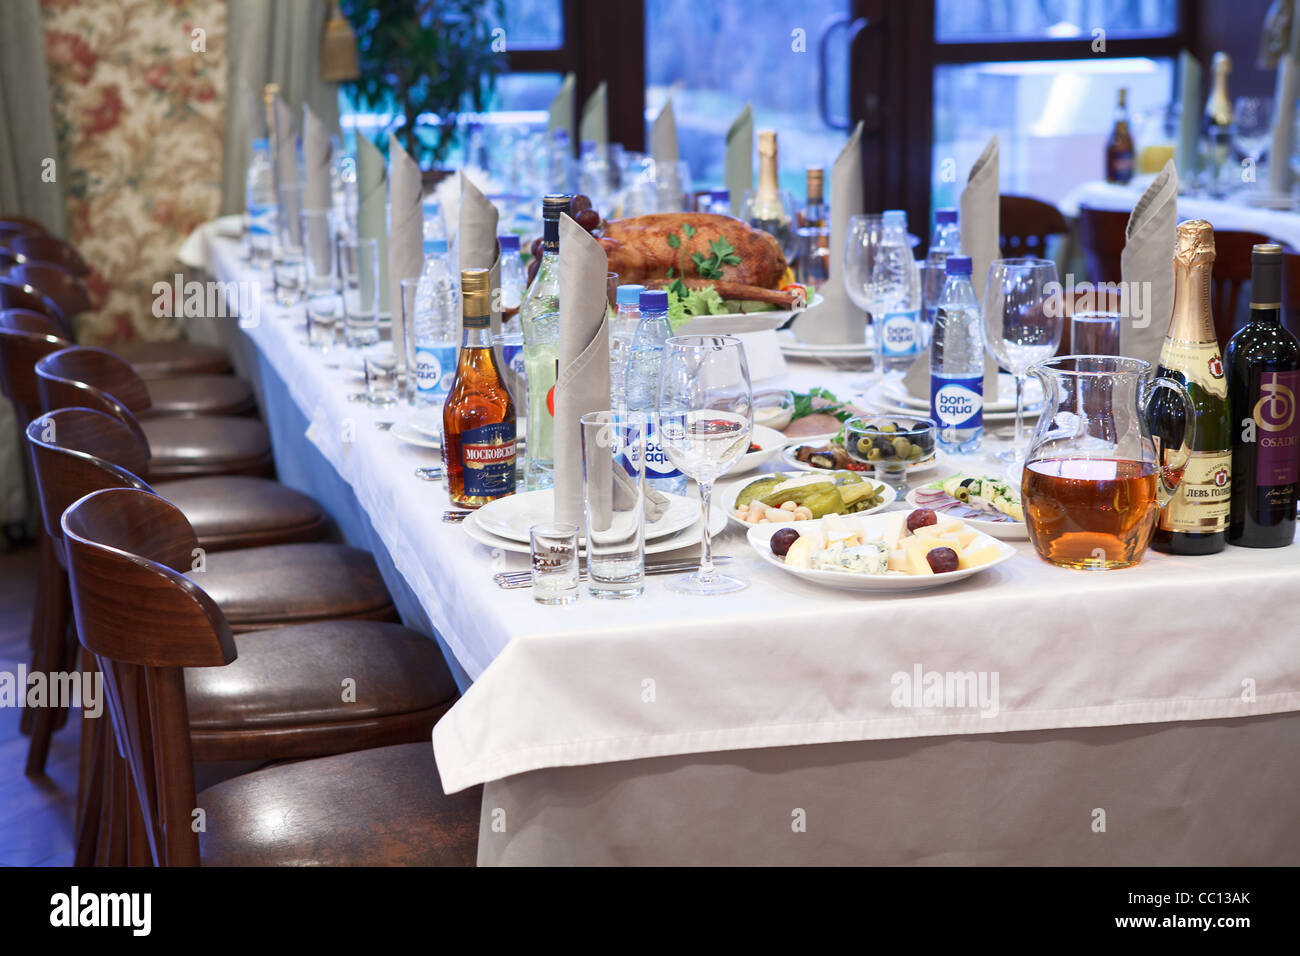 Russian Restaurant. Detail Of A Fancy Table Set For Christmas Dinner Party  For Lot Of Persons. Close Up View